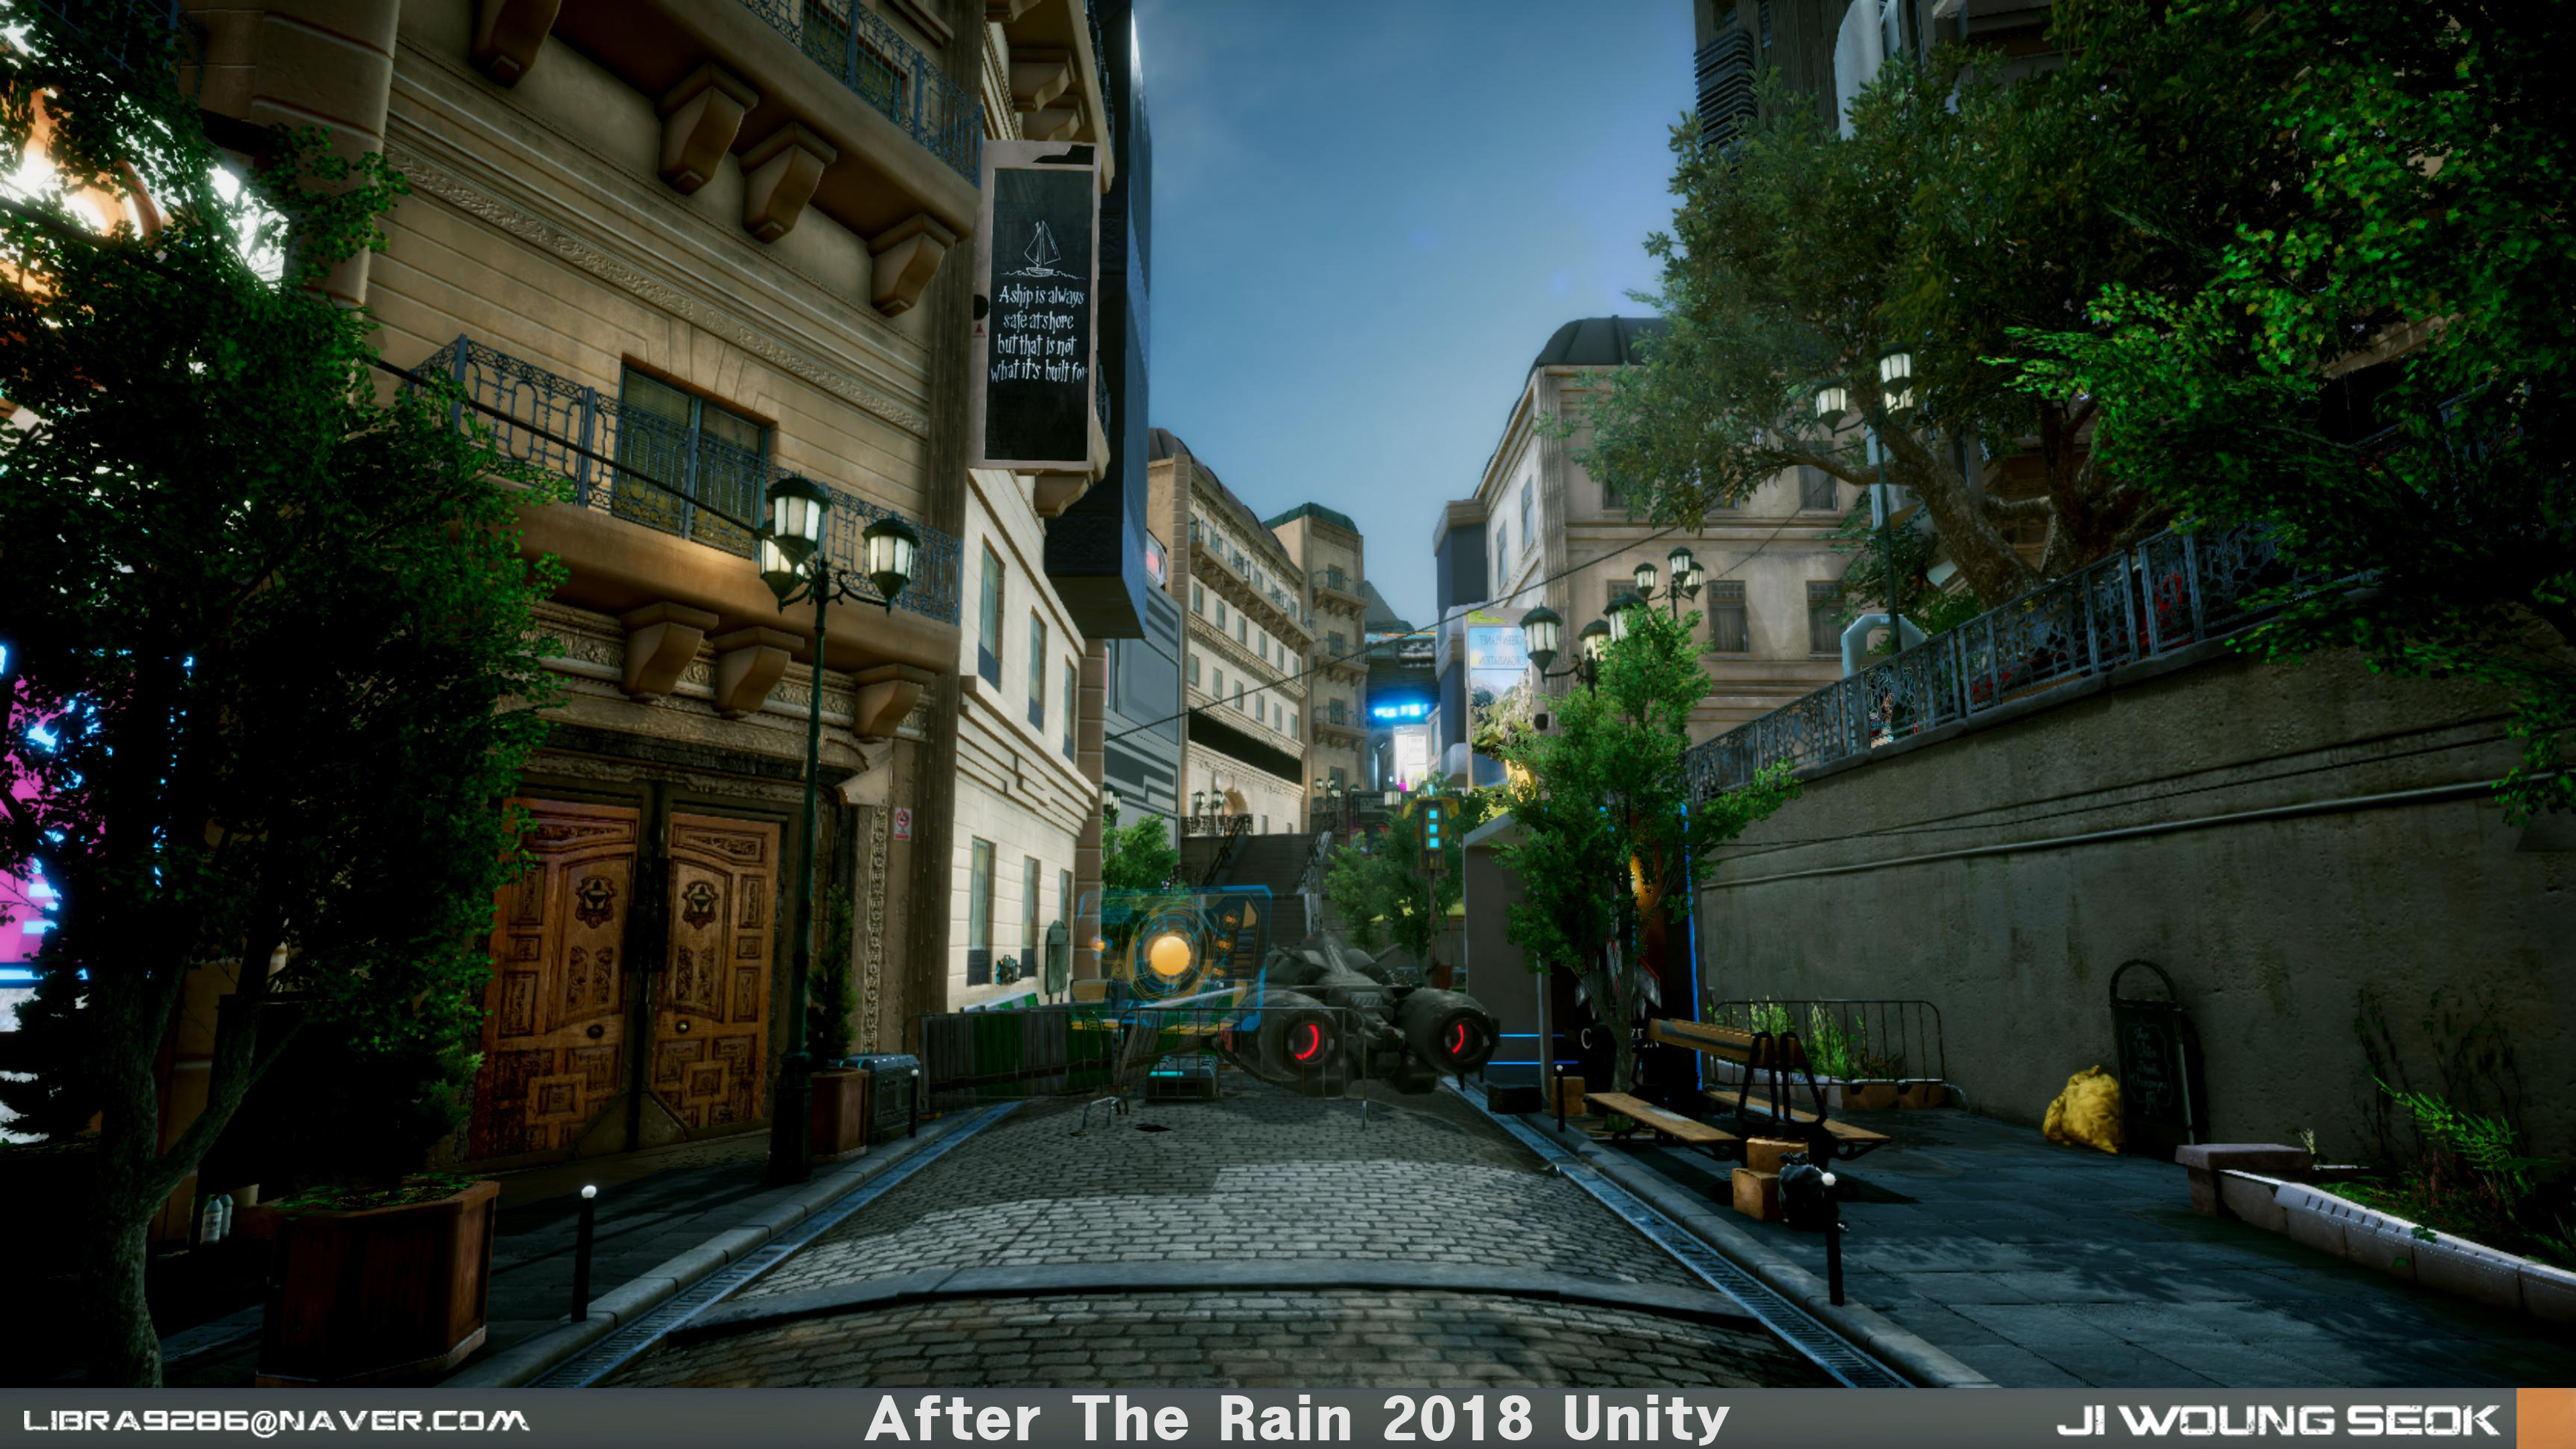 After The Rain Unity 2018 [Final Submission]